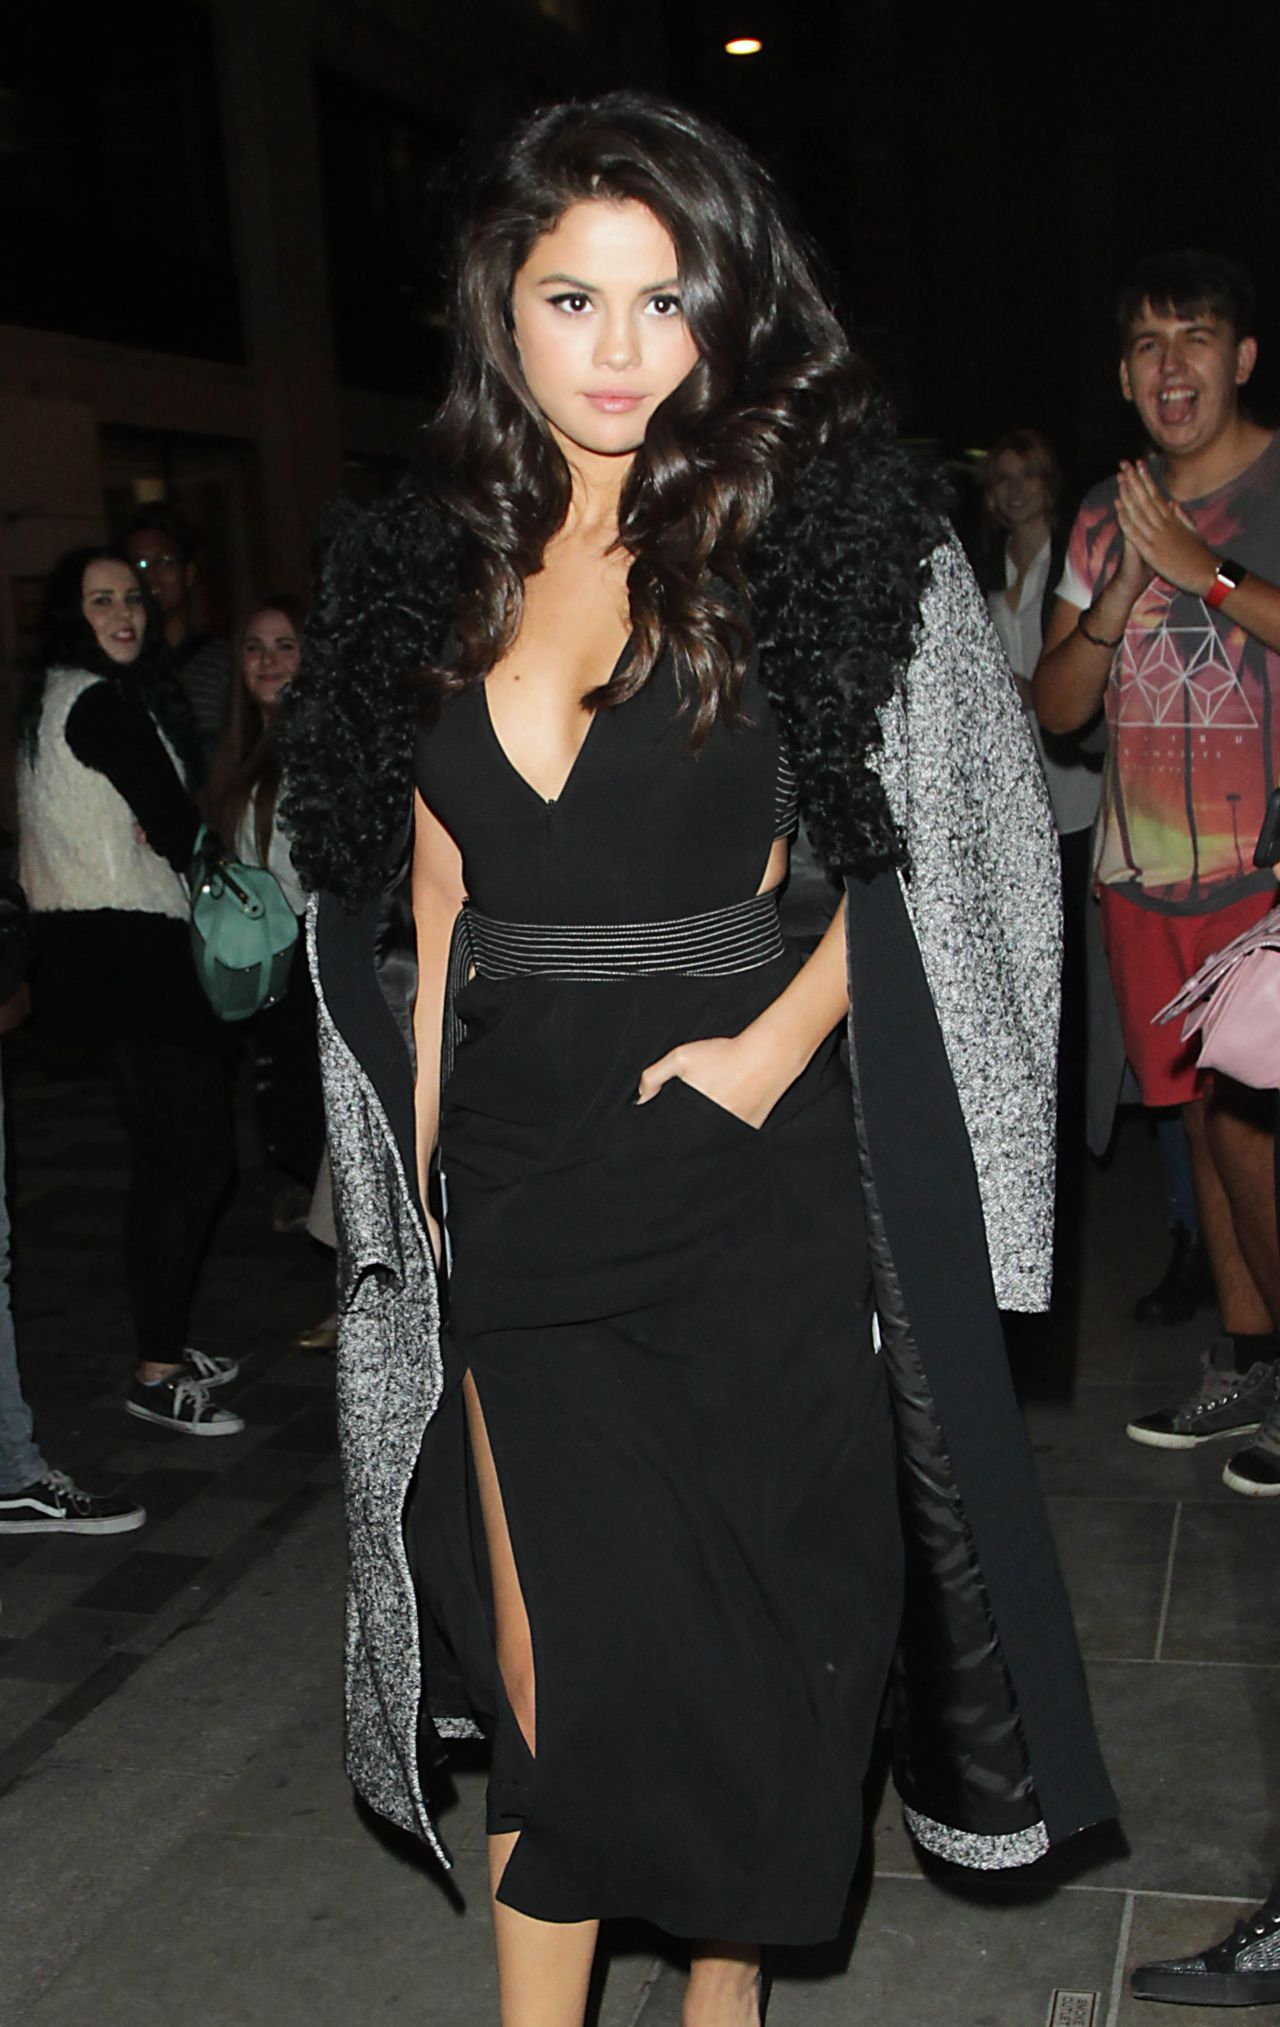 selena-gomez-leaving-the-dorchester-hotel-in-london-september-2015_12